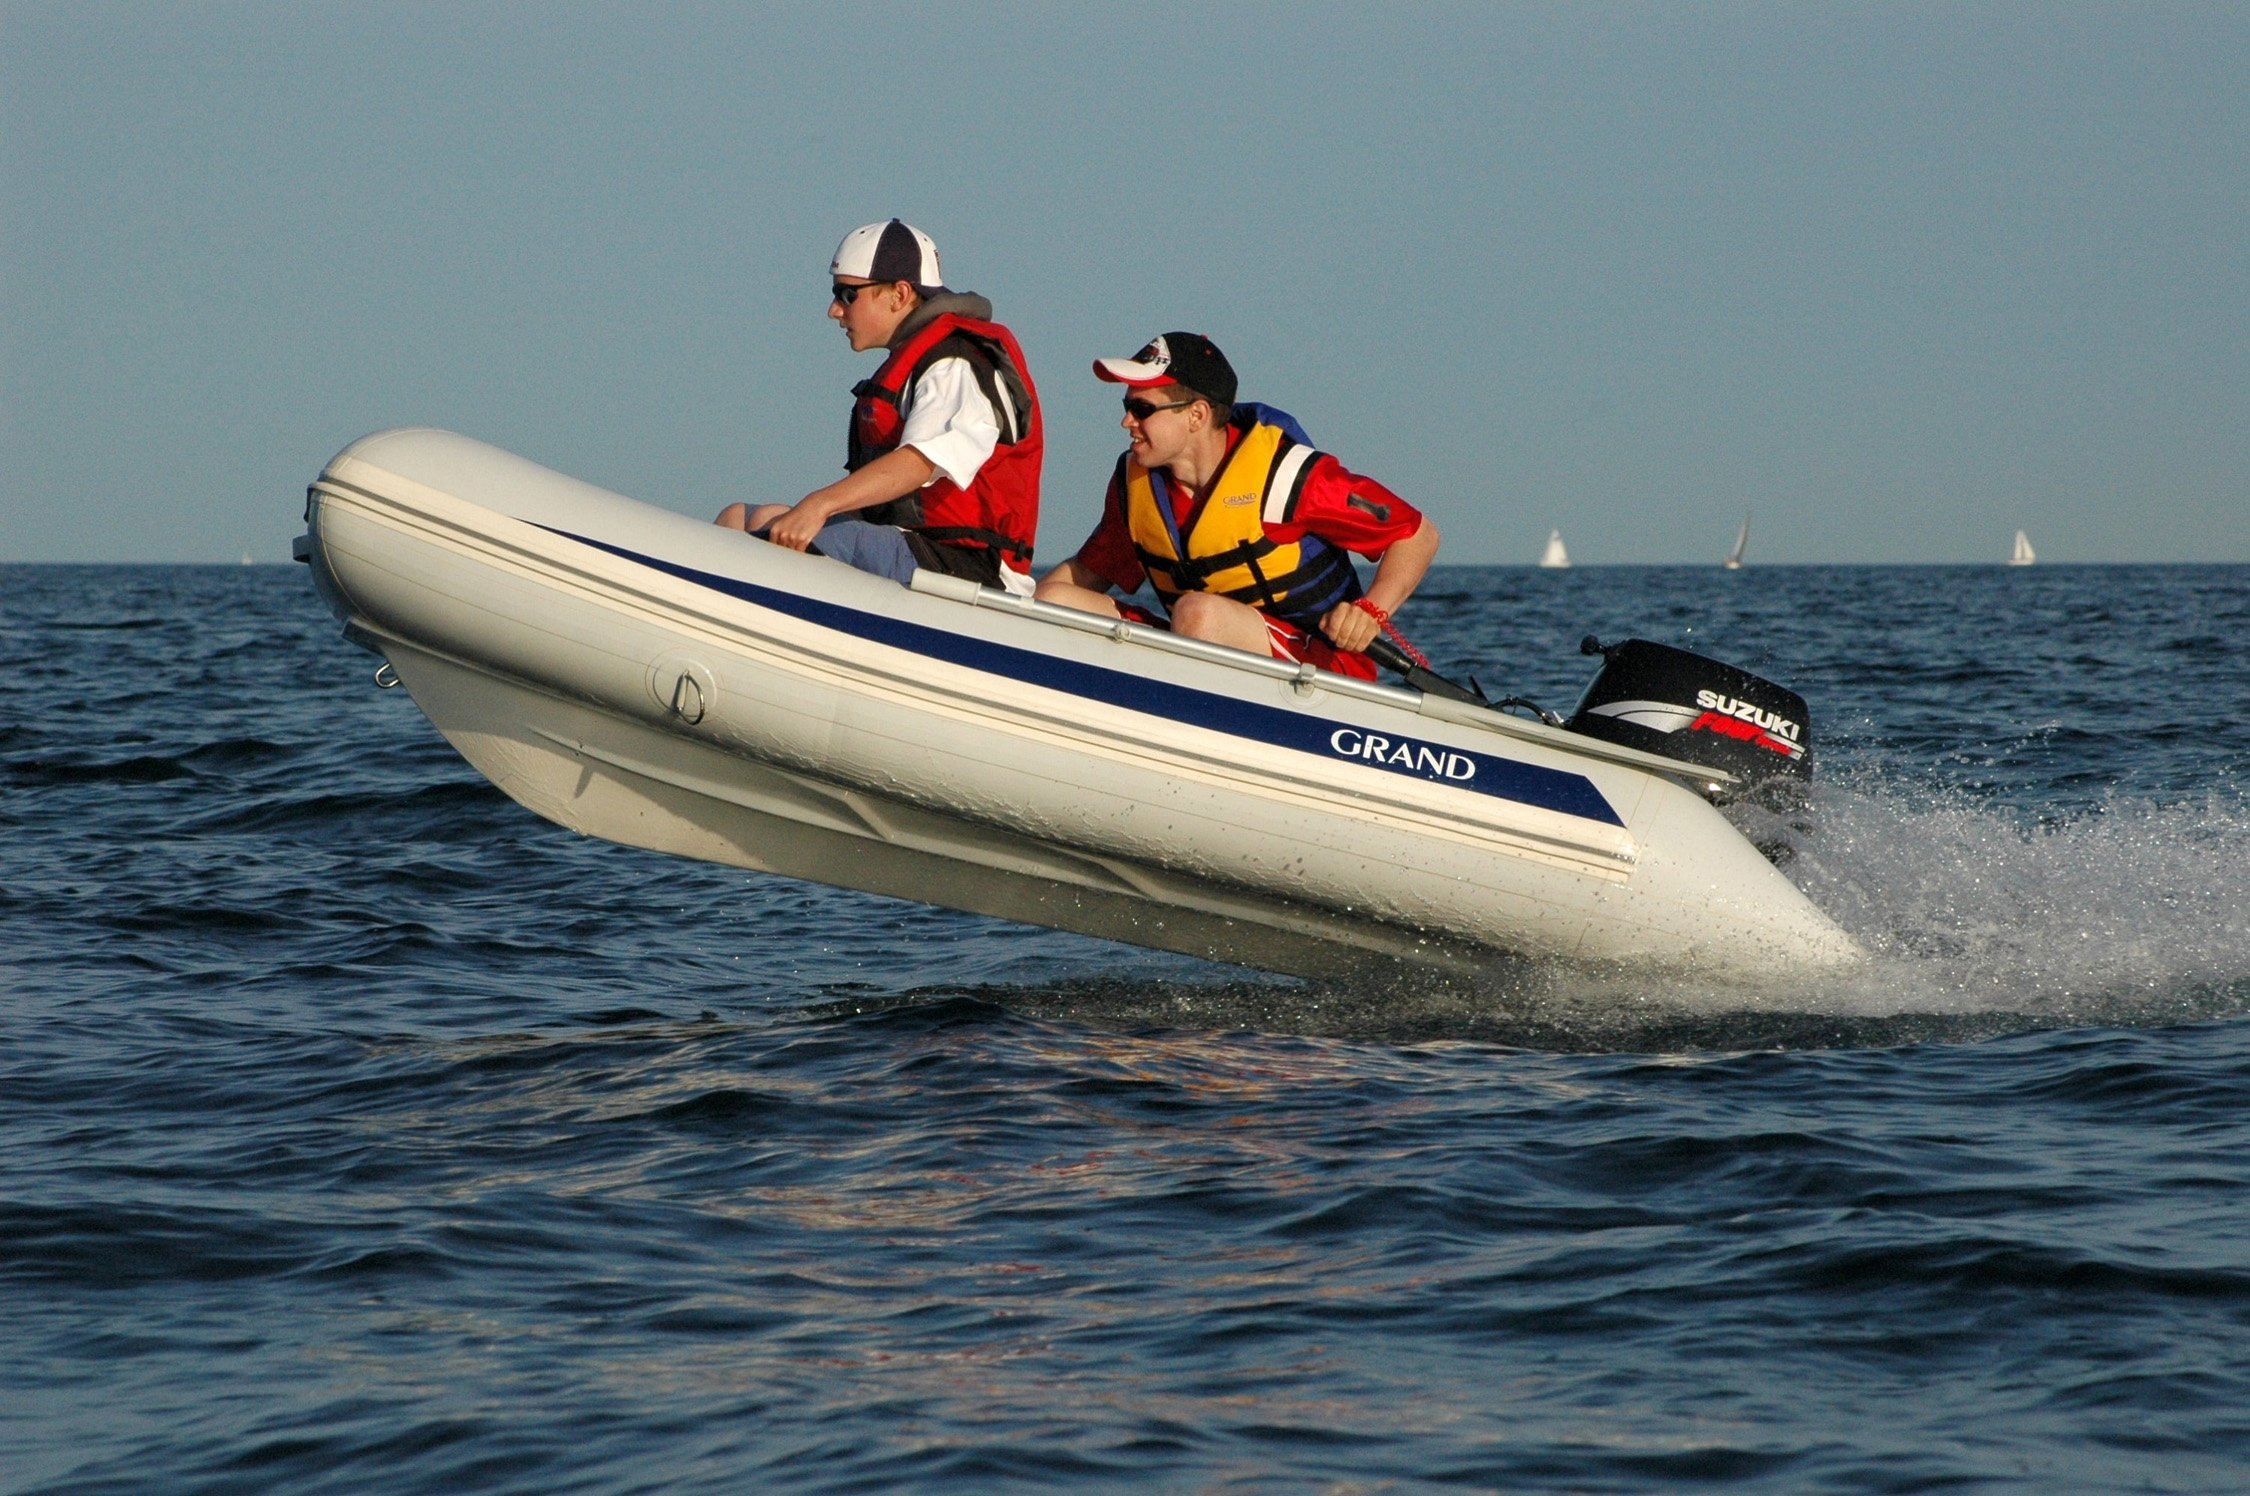 Grand Silver Line Inflatable Boat S250